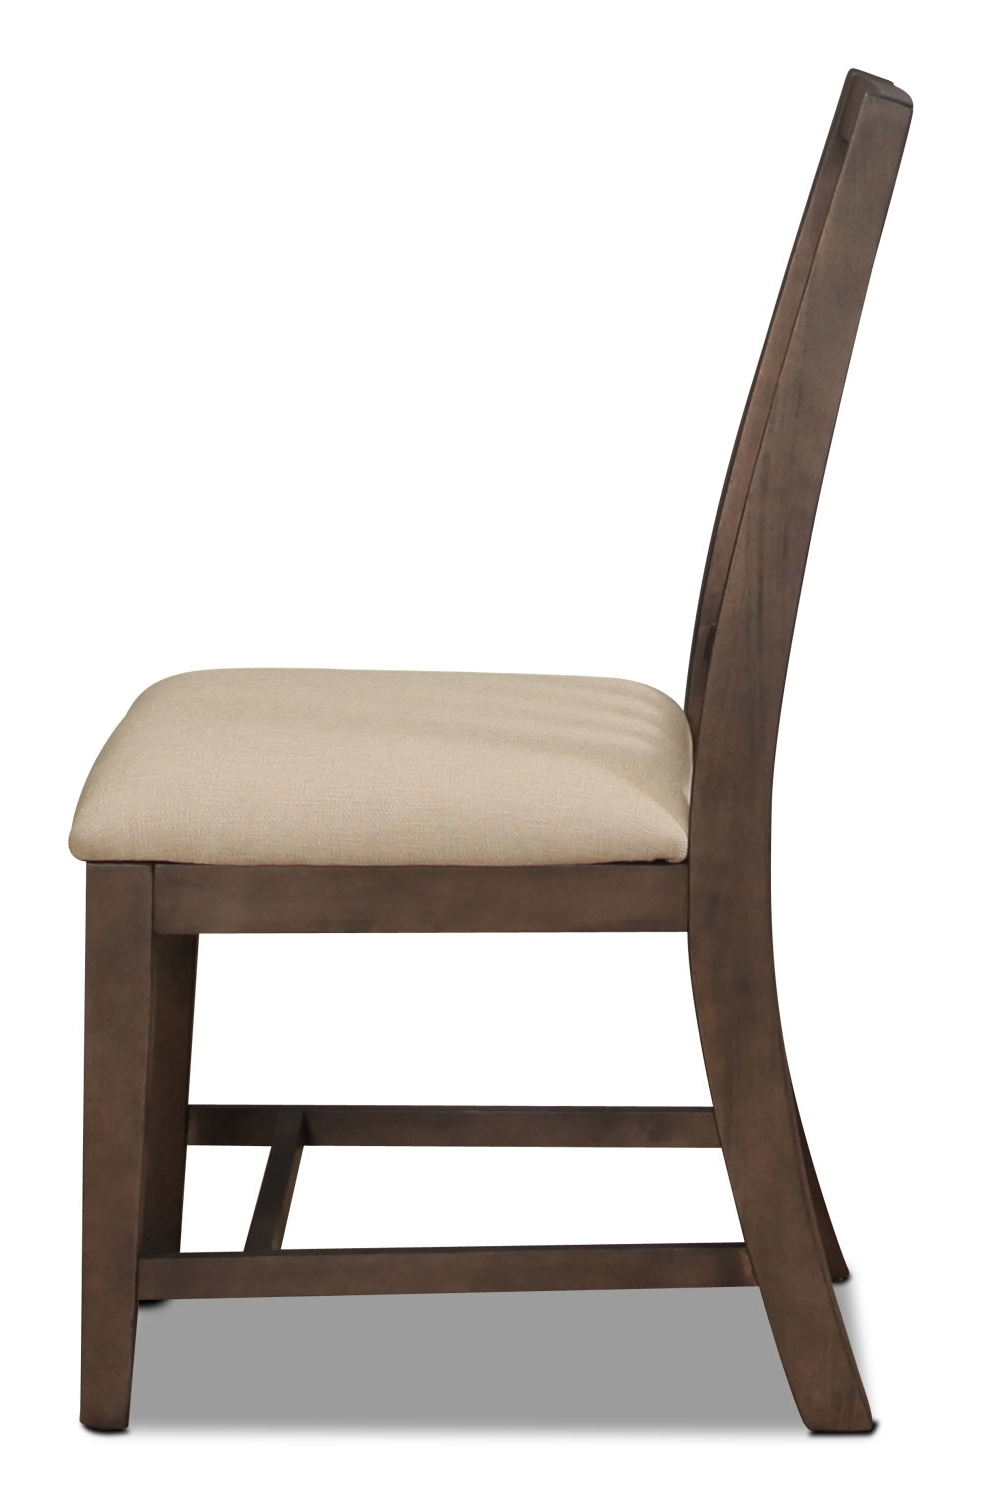 Magnolia Home Revival Jo's White Arm Chairs Pertaining To Popular Magnolia Home Traditional Side Chair (View 6 of 20)